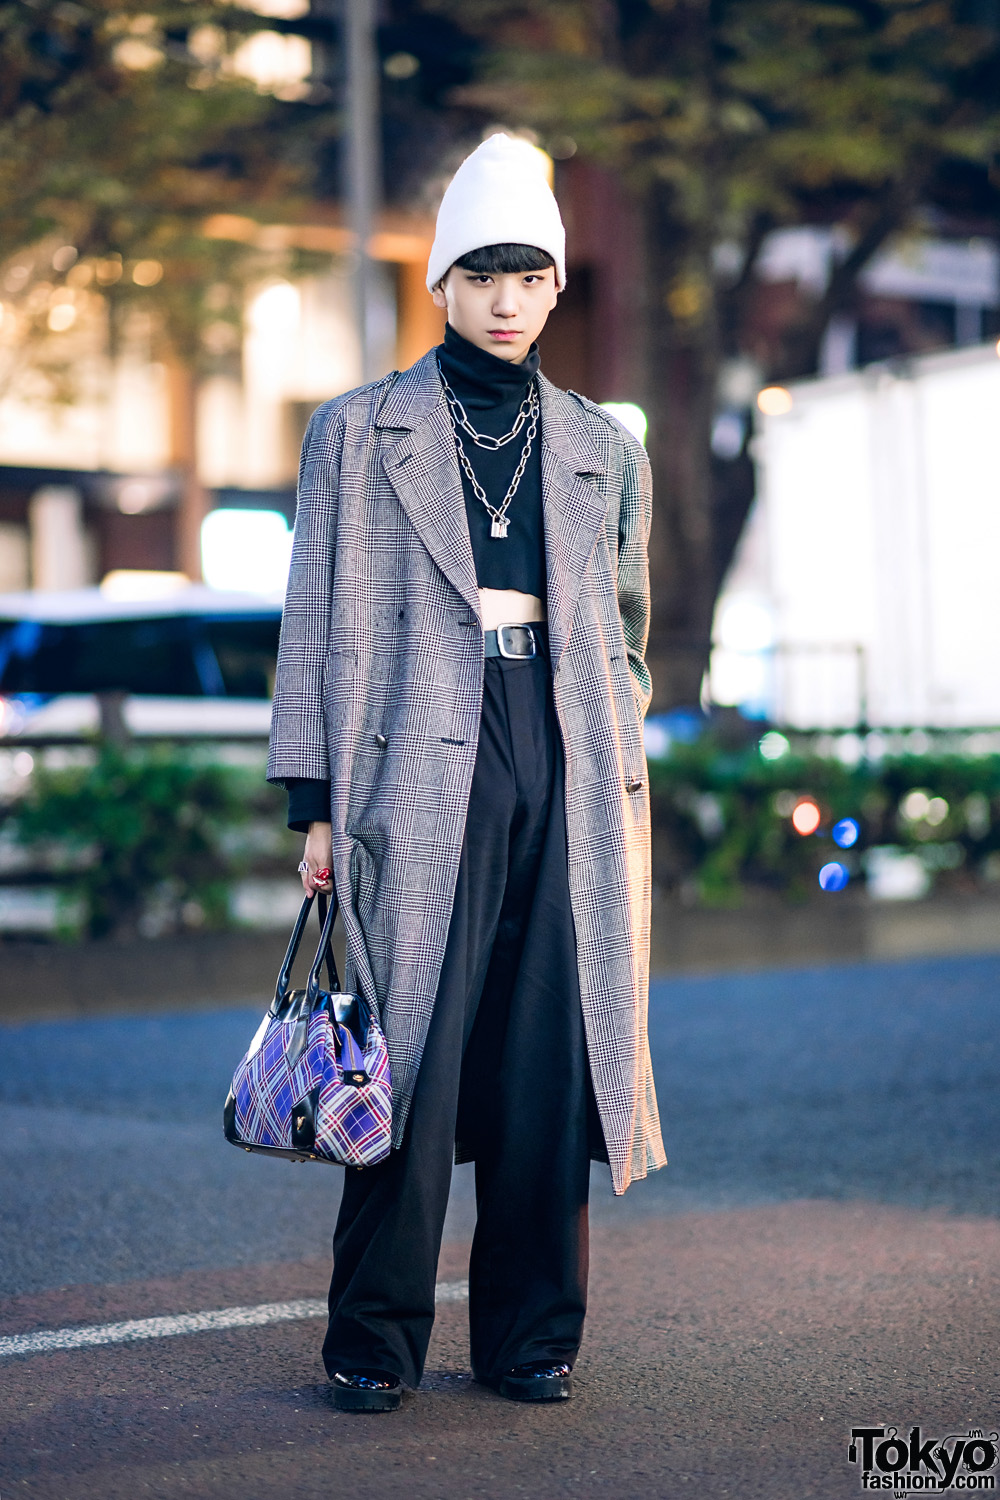 b037f1b26d1 Harajuku Guy s Winter Street Style w  Vintage Houndstooth Maxi Coat